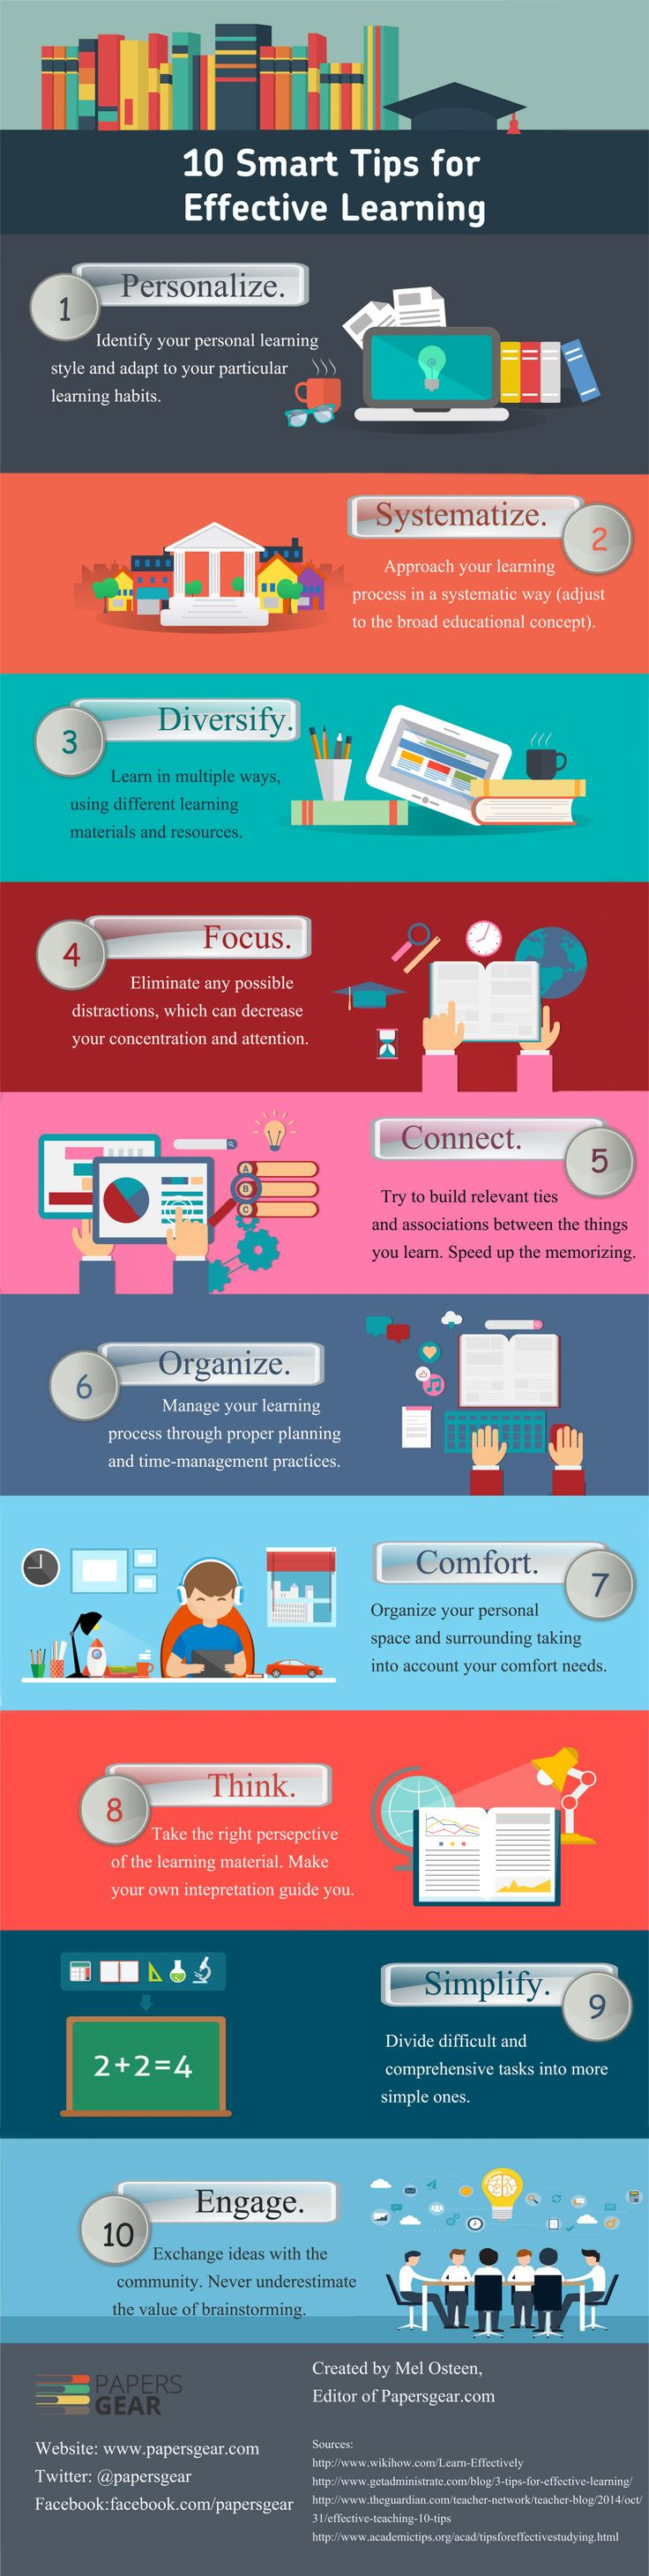 The 10 Smart Tips for Effective Learning Infographic proposes effective principles for memorizing, structuring and organizing the learning process.